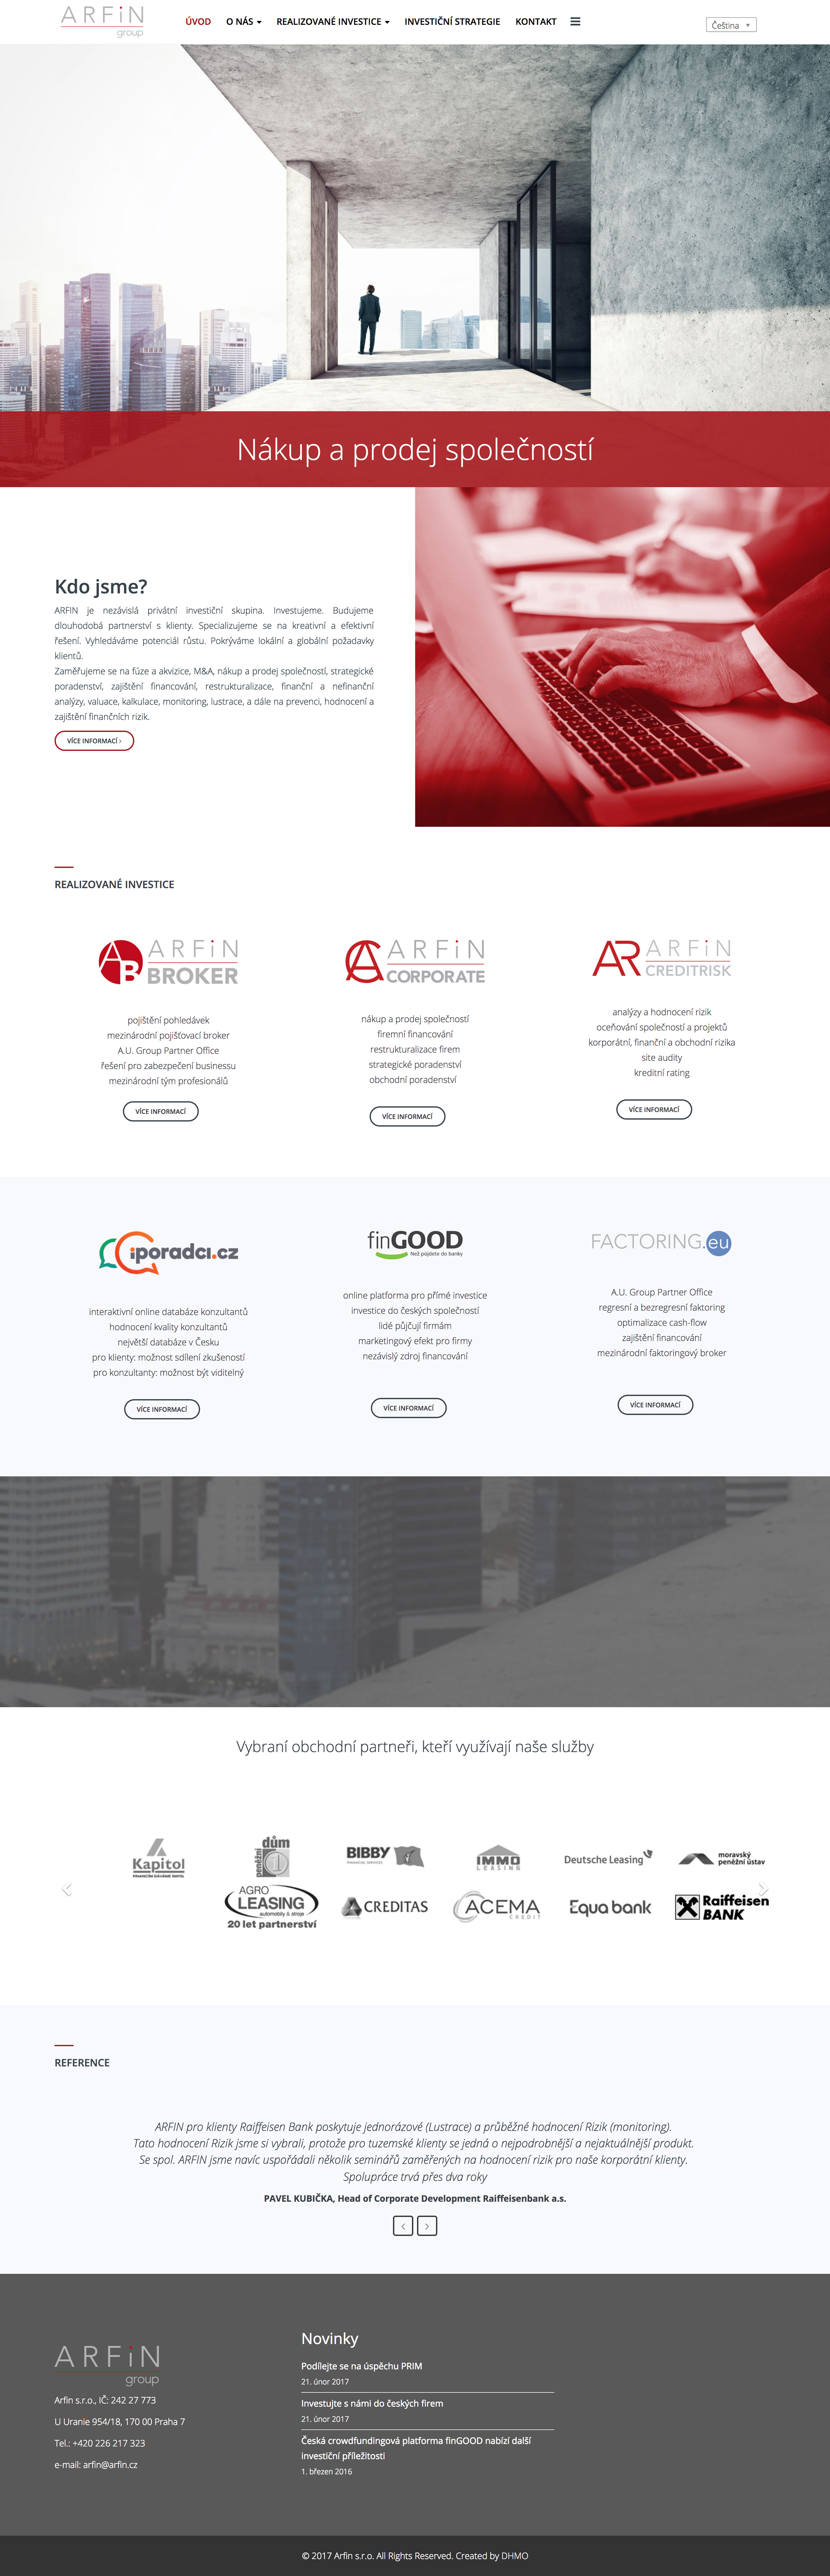 Arfin Group webdesign